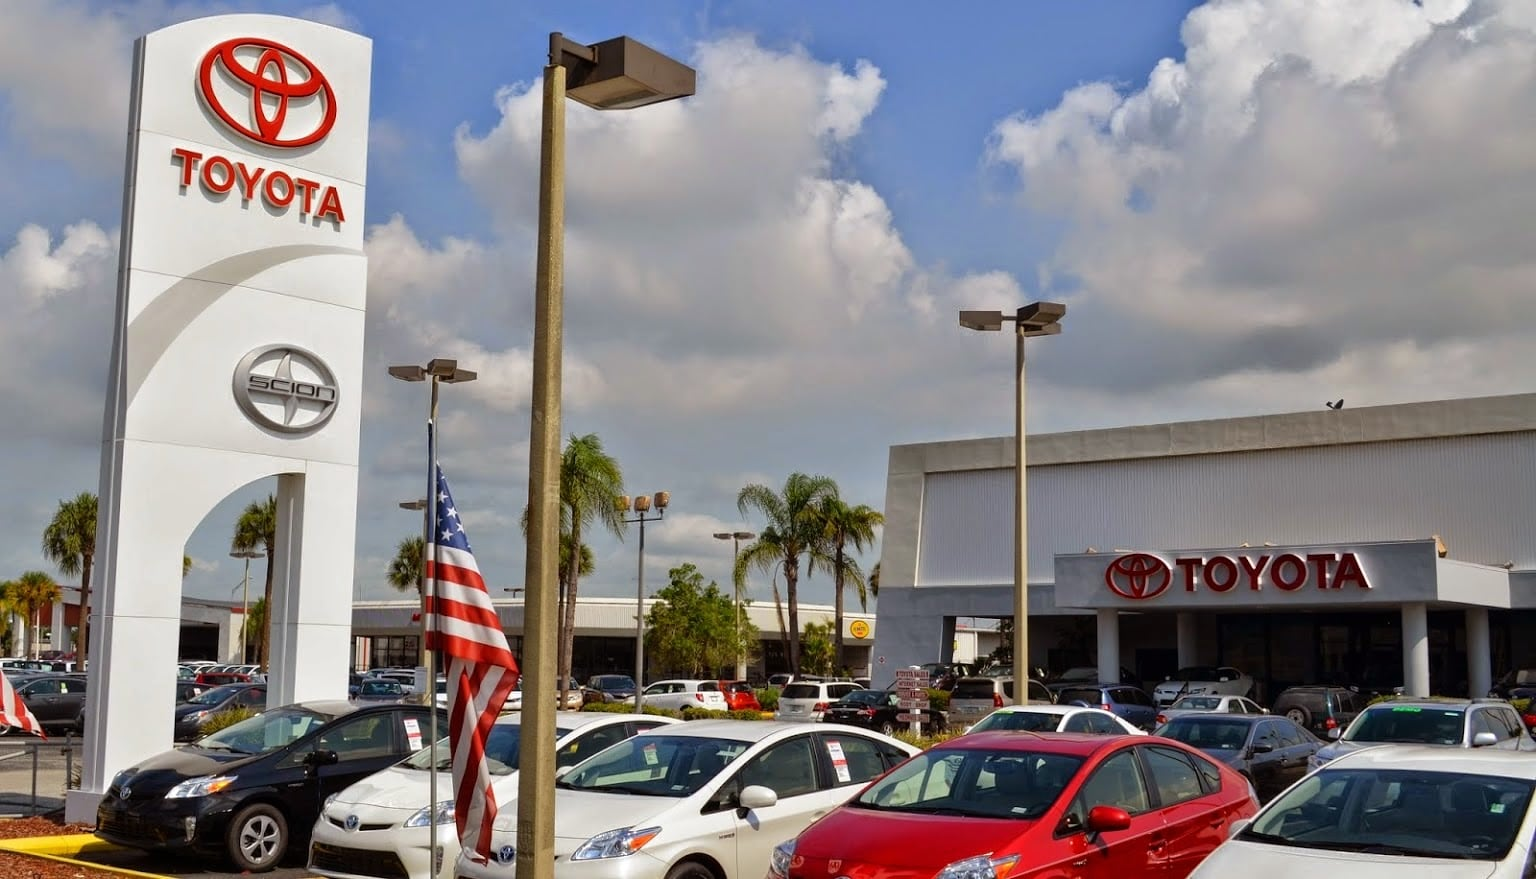 Find Toyota Dealers Near Me In Tampa Bay Fl Toyota Directions Amp Hours